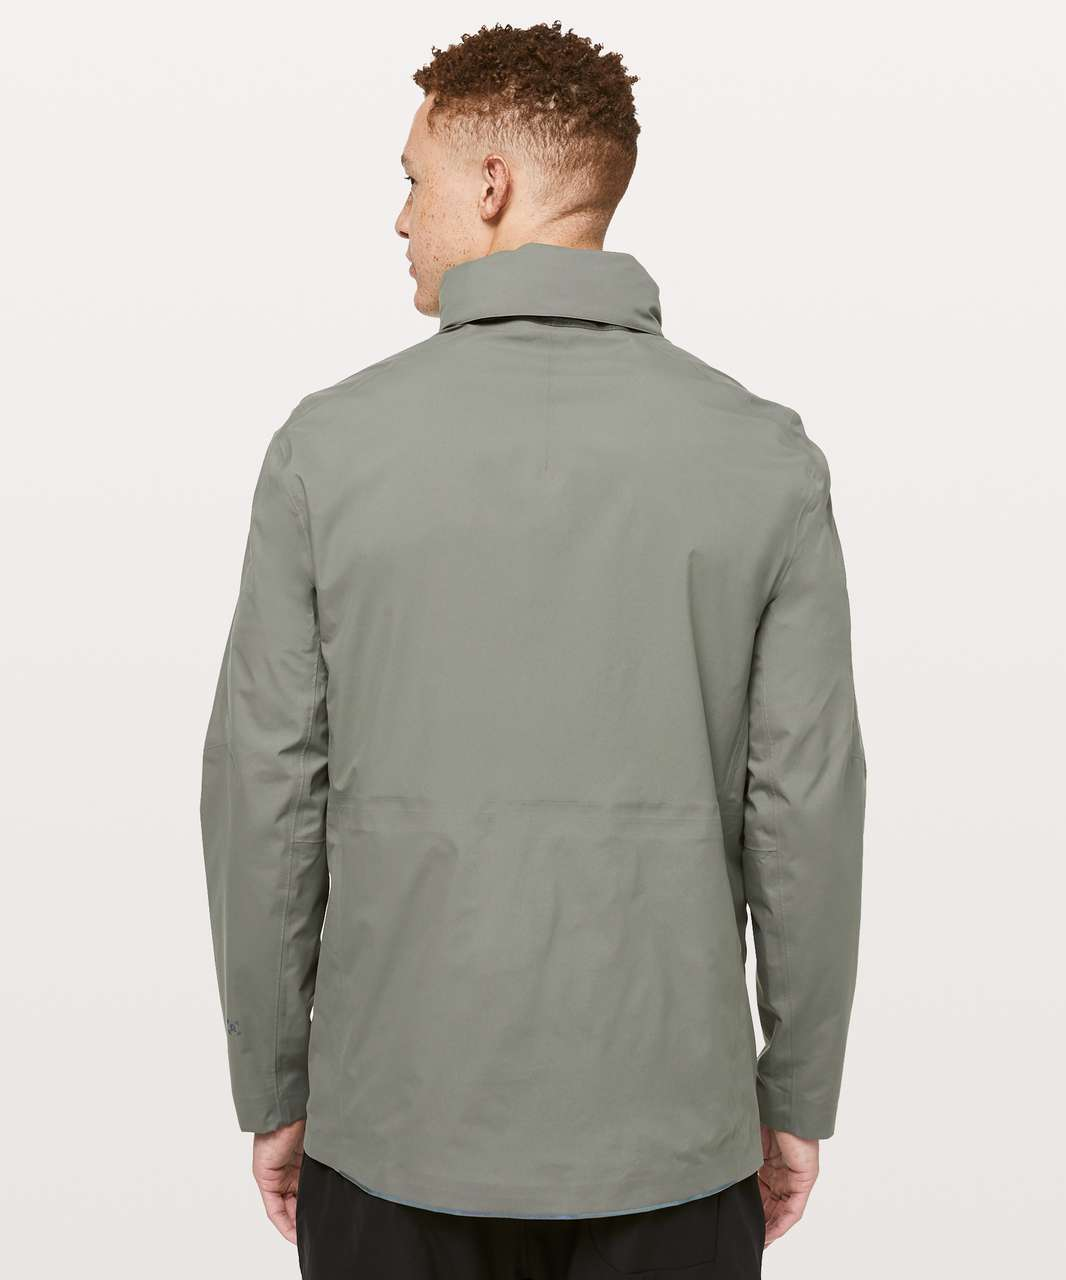 Lululemon Storm Field Jacket - Grey Sage